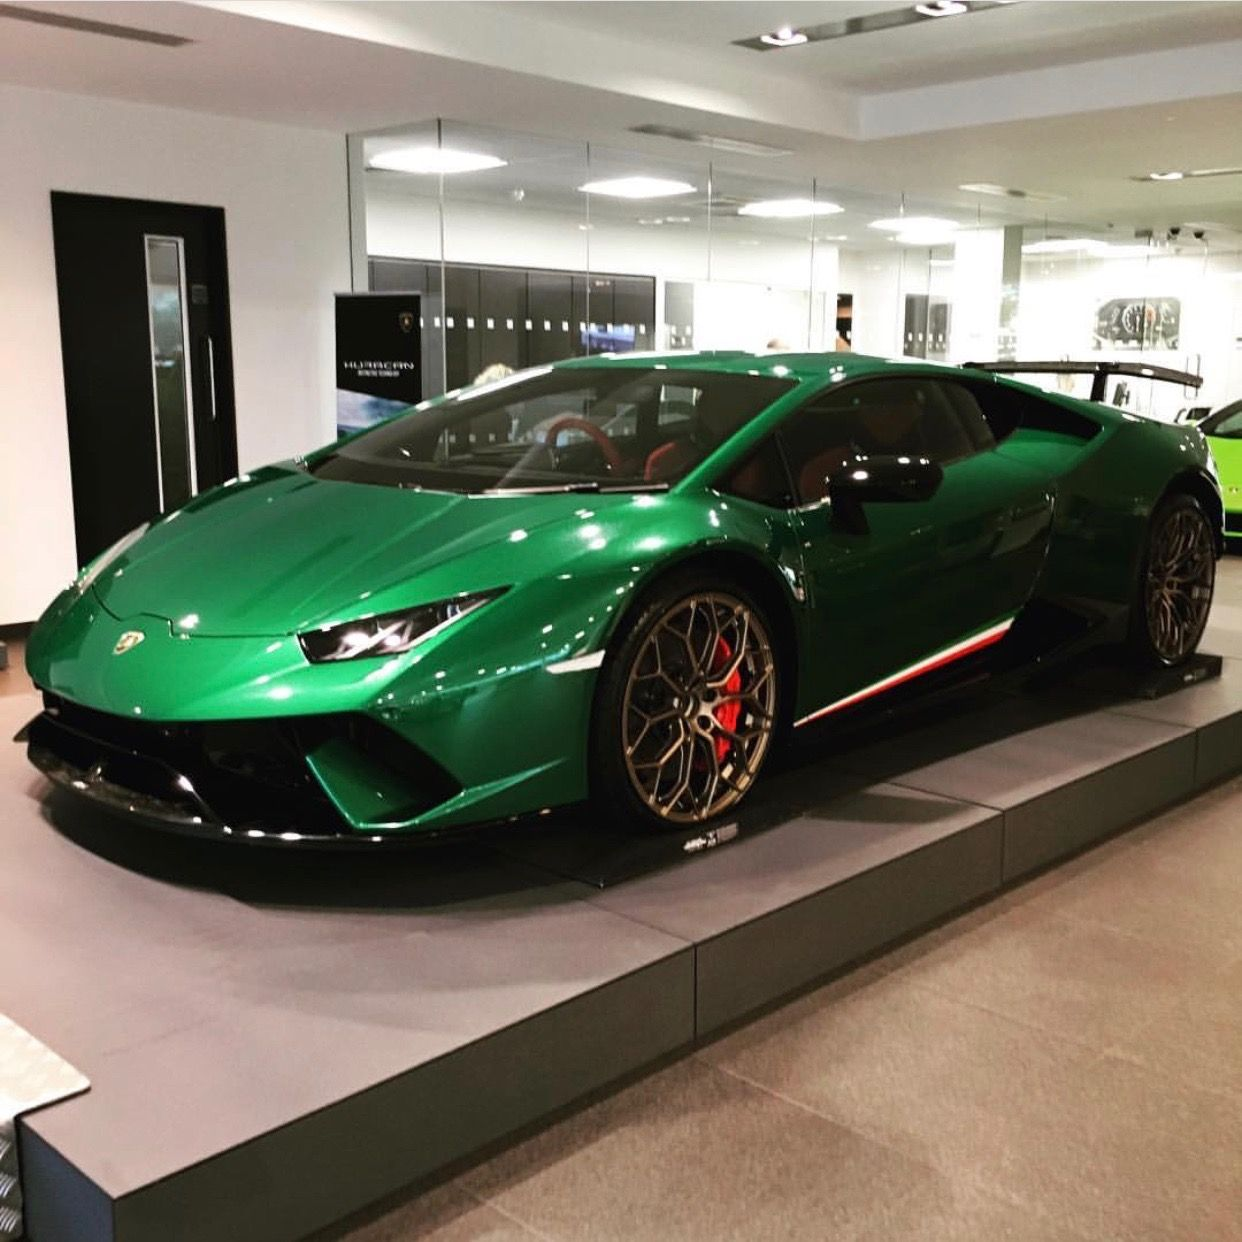 Lamborghini Huracan Performante Painted In Ad Personam Verde Balio W/  Tricolore Stripes Along The Doors